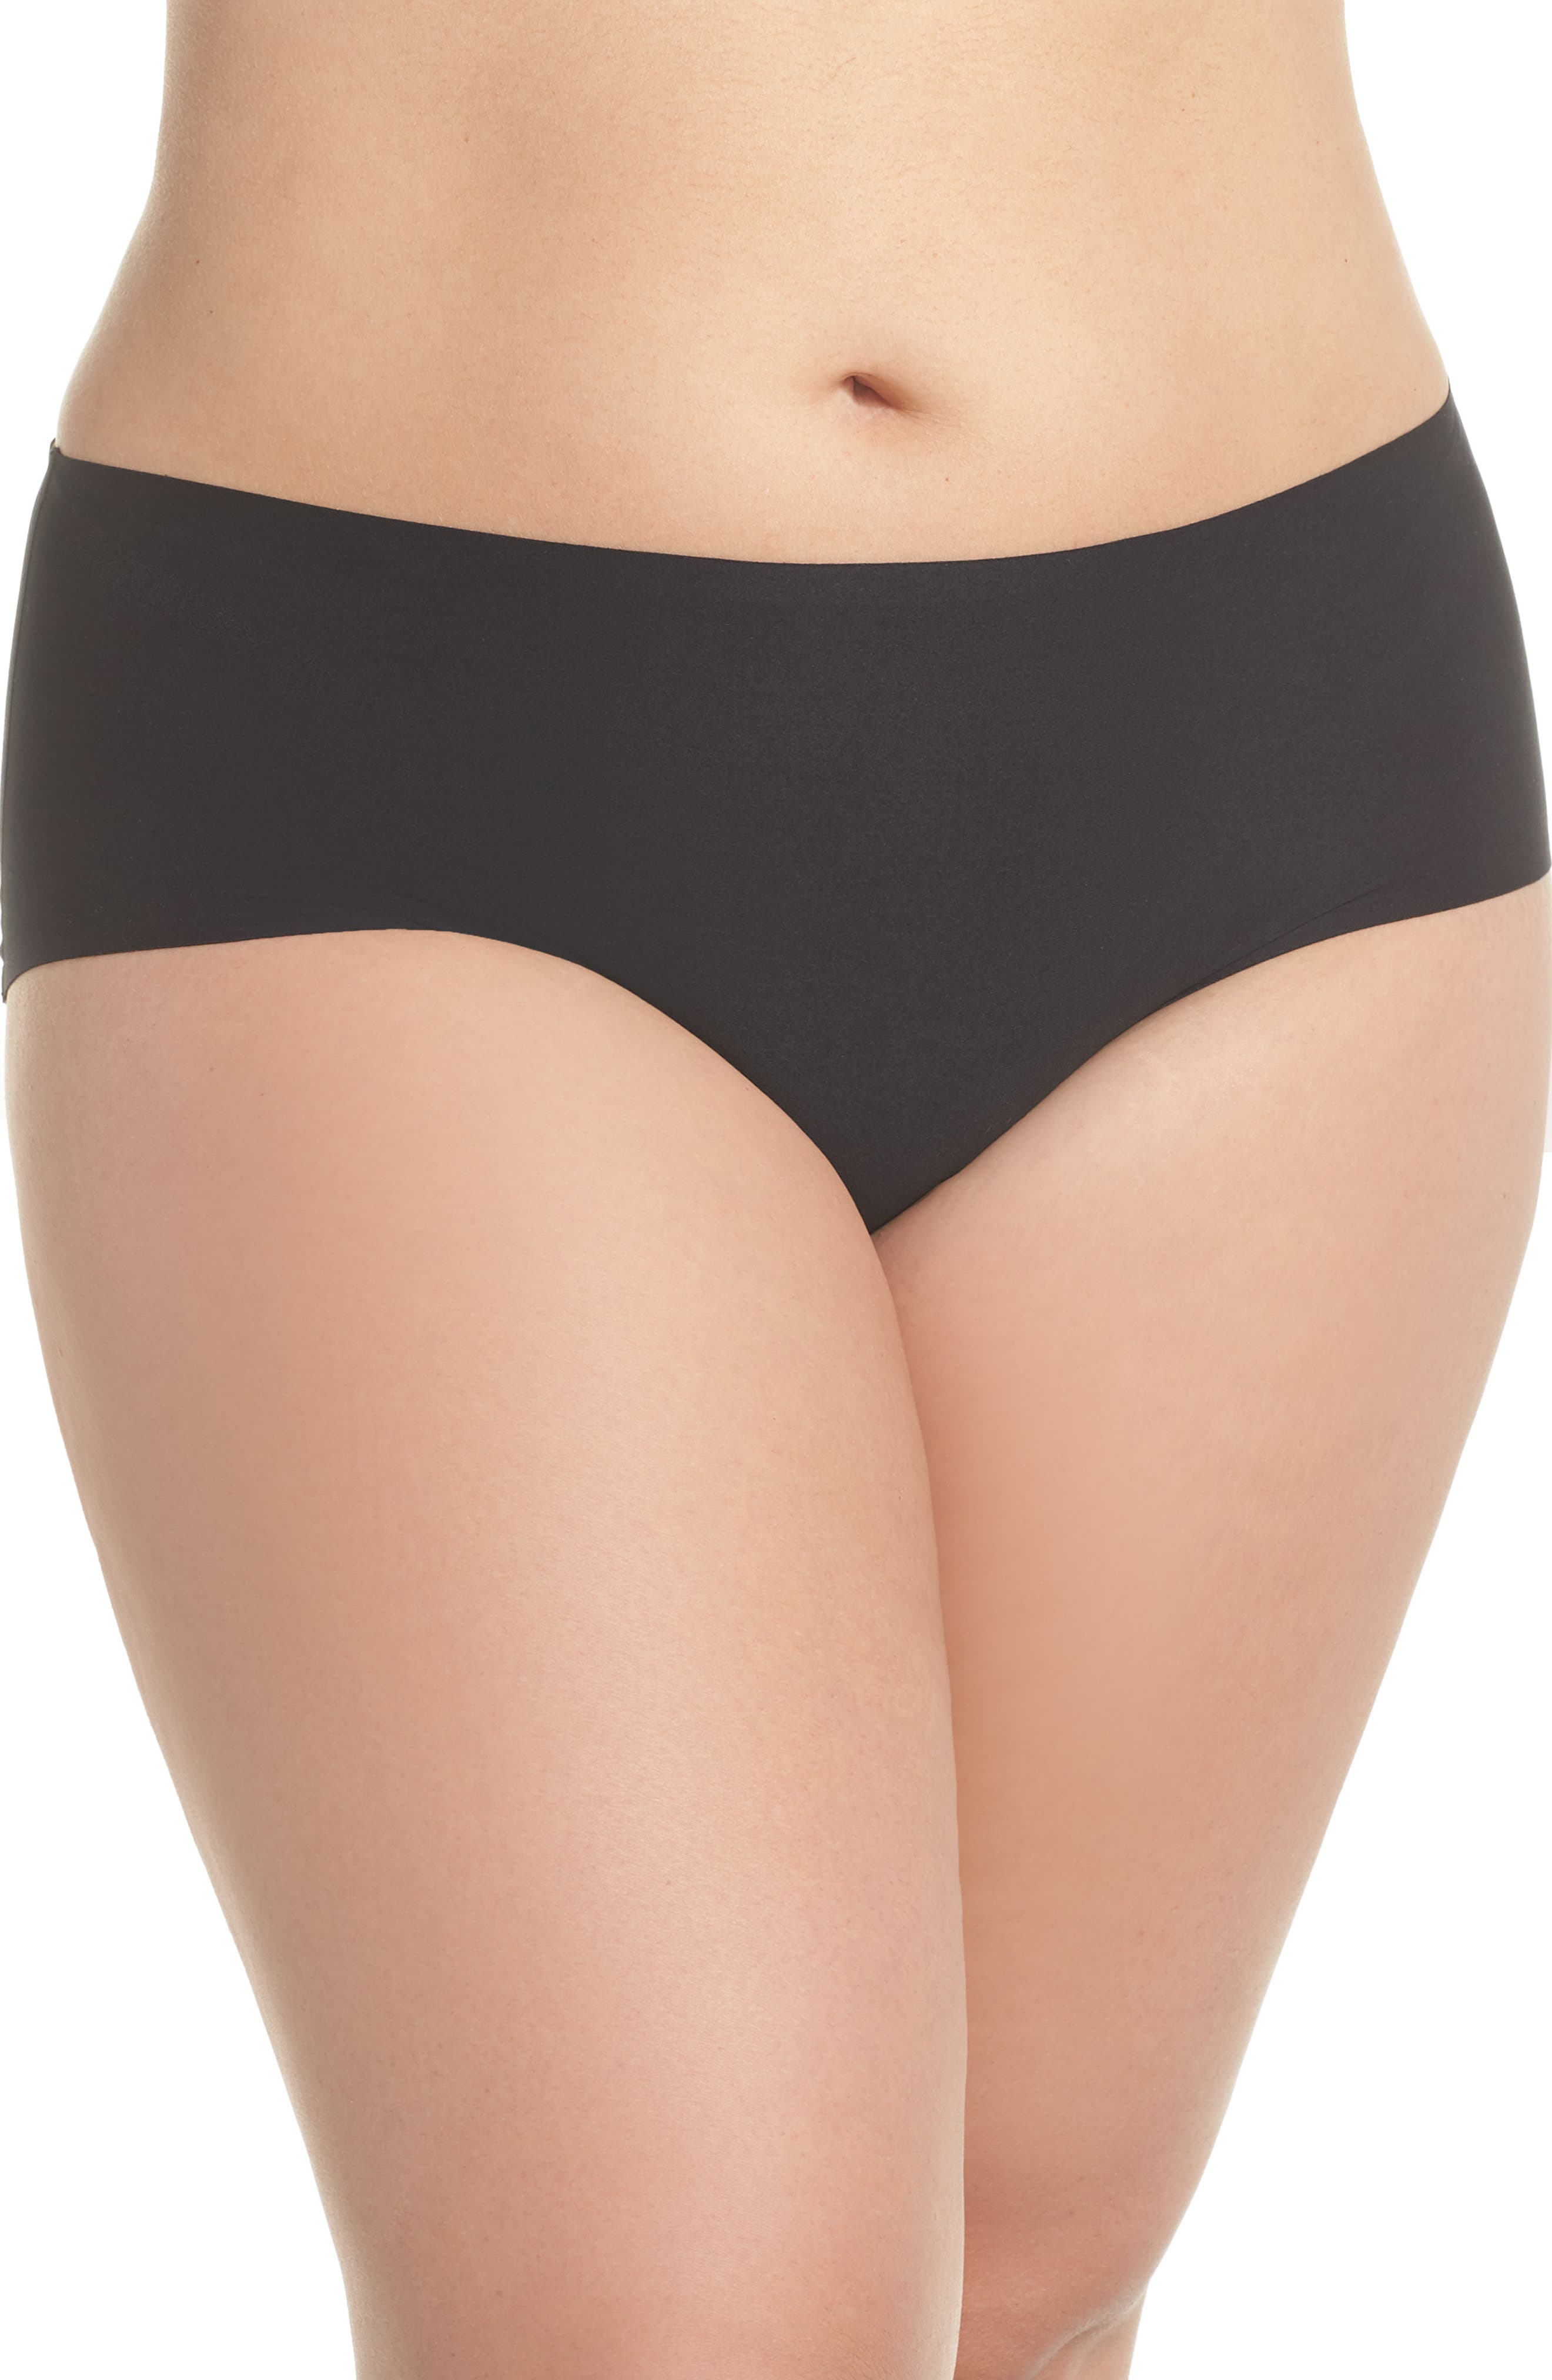 CHANTELLE LINGERIE Soft Stretch Seamless Hipster Panties, Main, color, BLACK